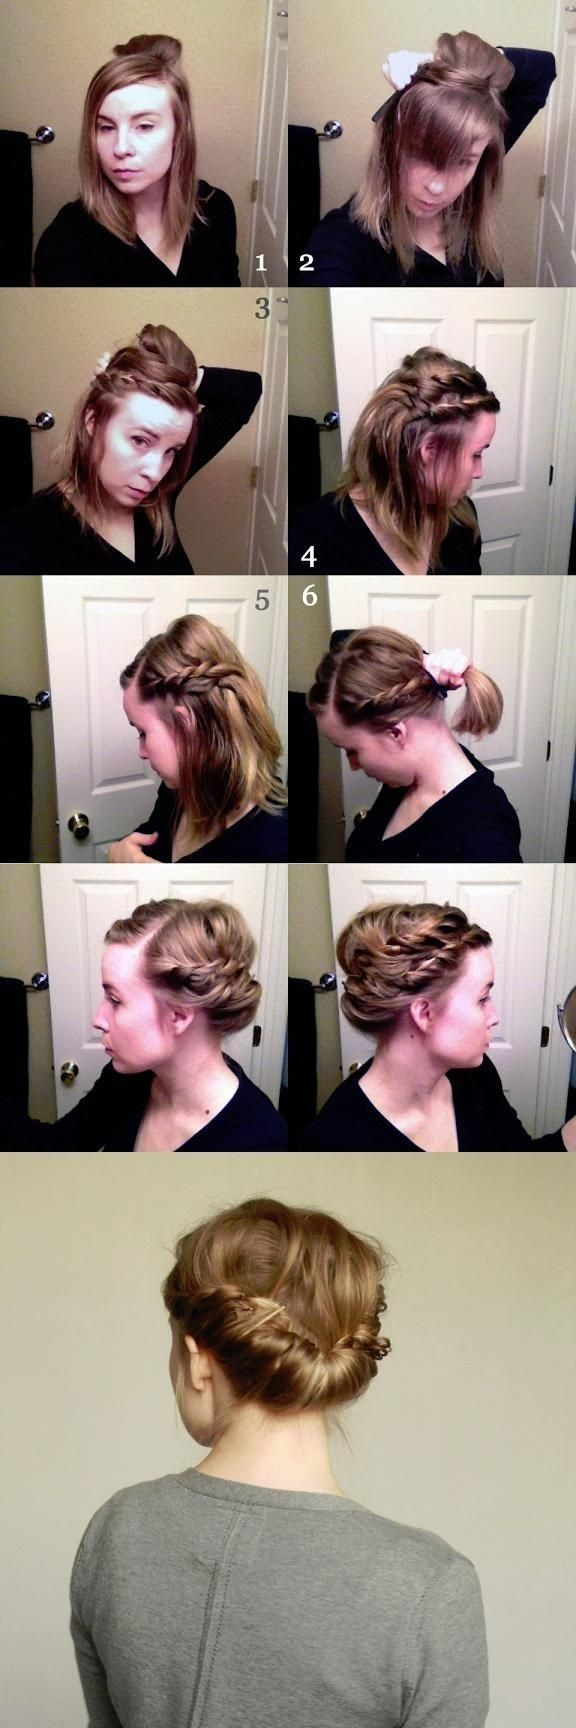 Double Braid Hairstyle Tutorial: Updos for Medium Hair